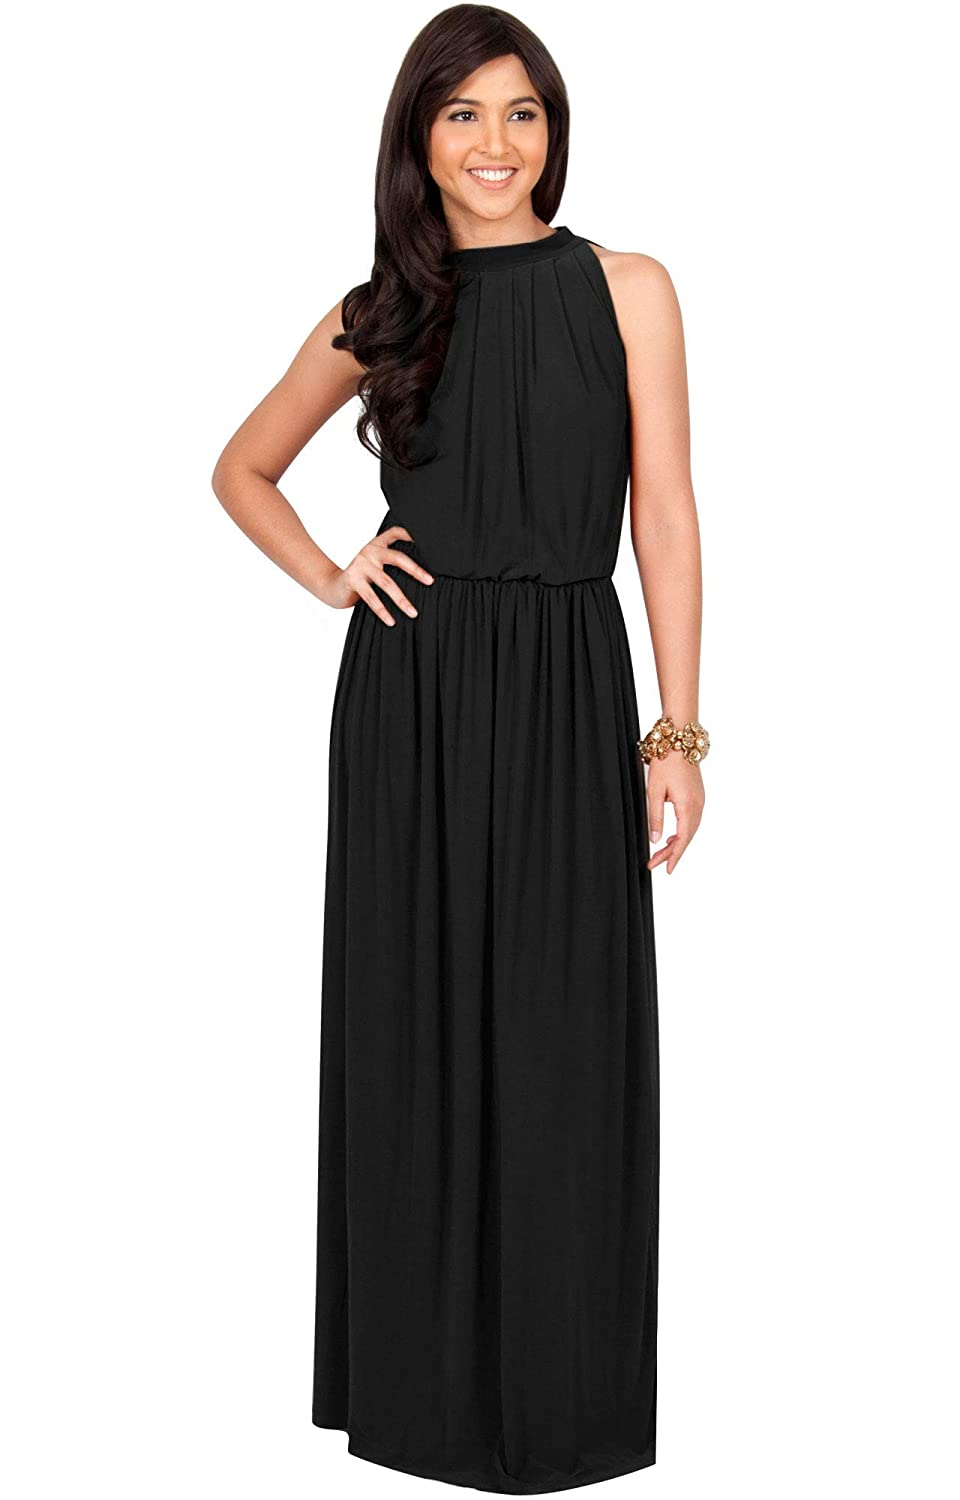 1fec05999d KOH KOH Sexy Sleeveless Summer Formal Flowy Casual Gown at Amazon Women s  Clothing store